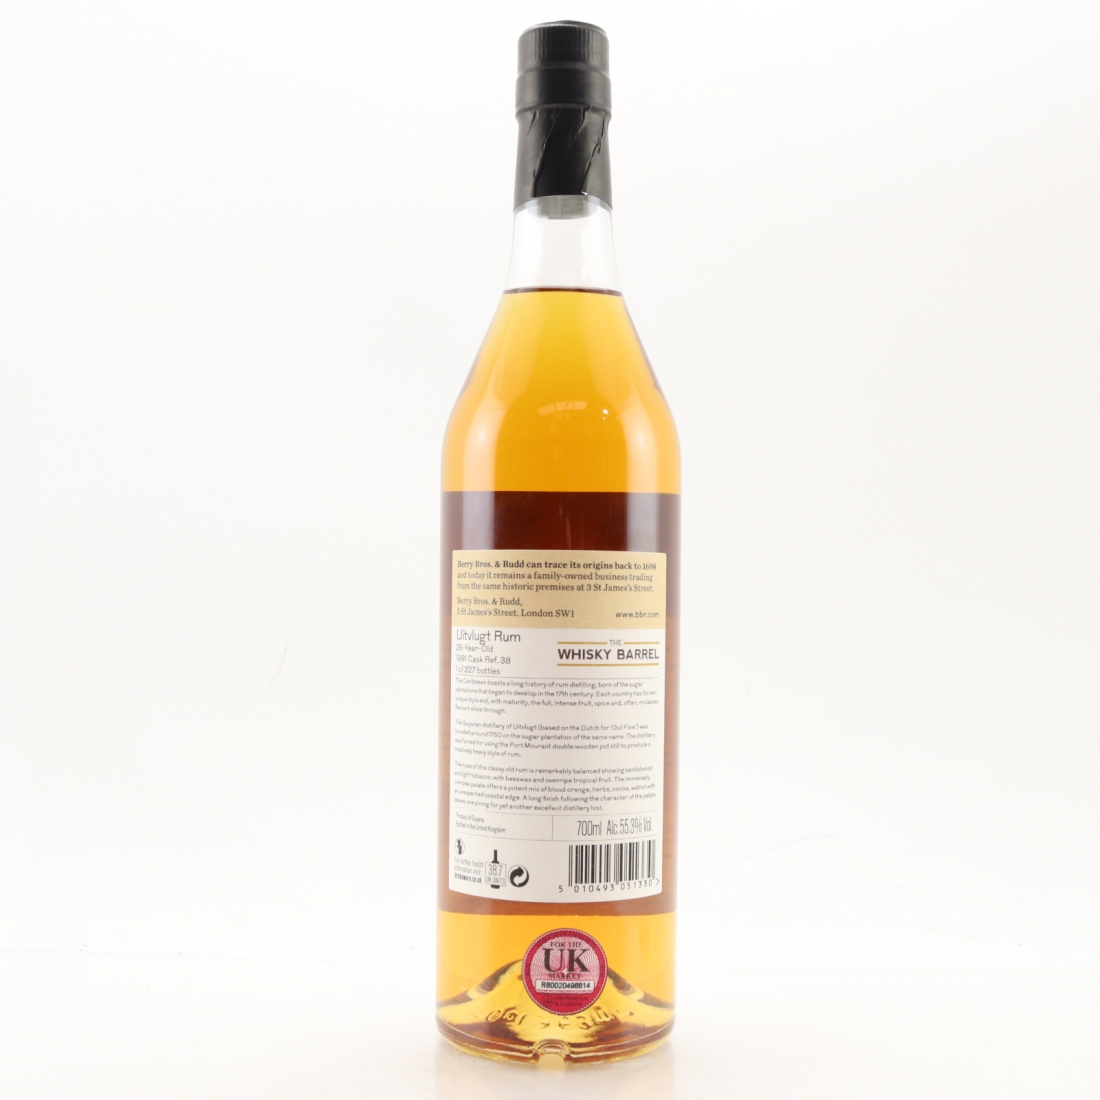 Uitvlugt 28 Year Old Berry Brothers and Rudd Rum / The Whisky Barrel